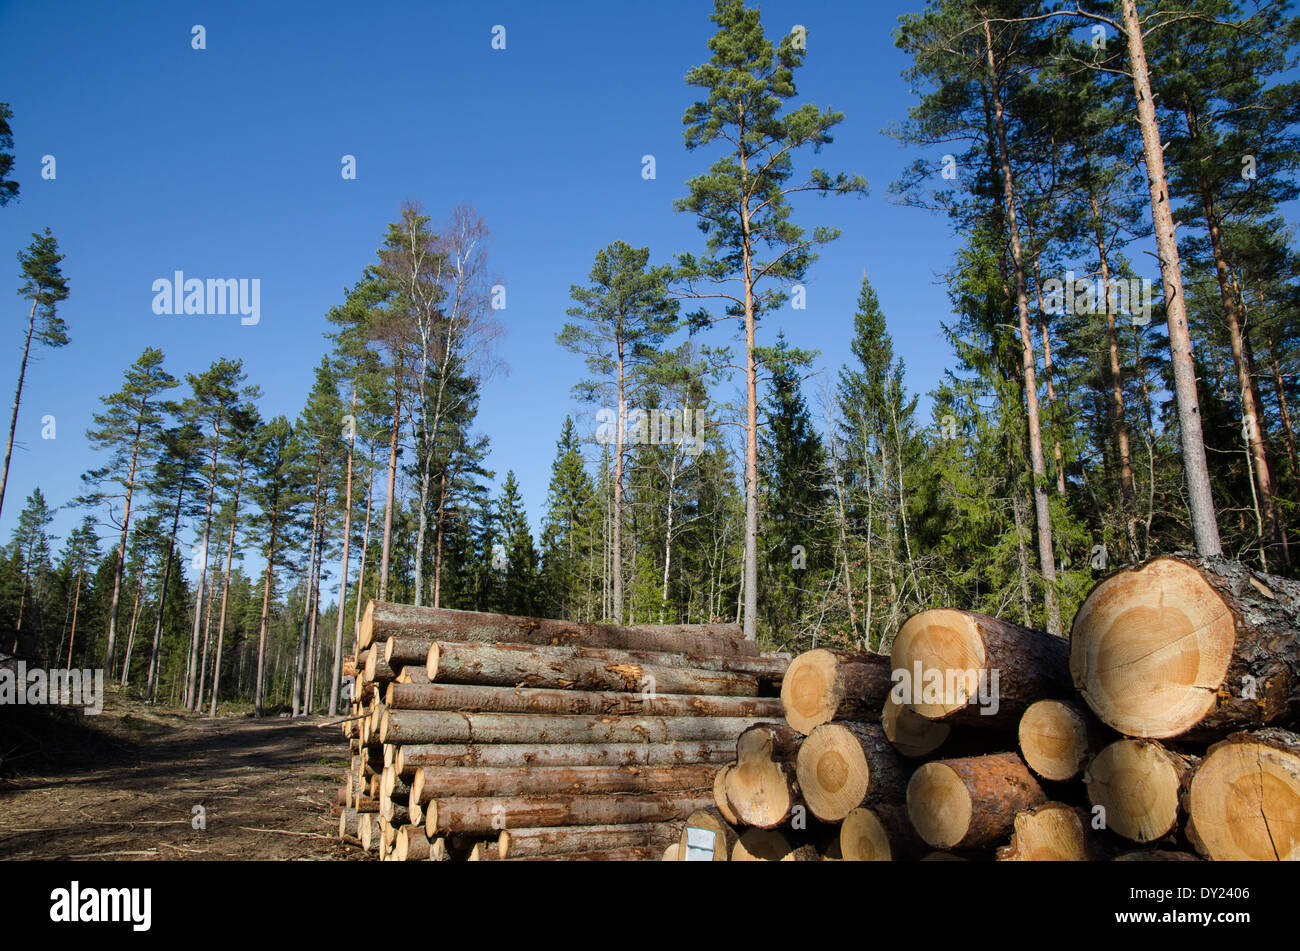 Softwood piles at road side in a coniferous forest - Stock Image